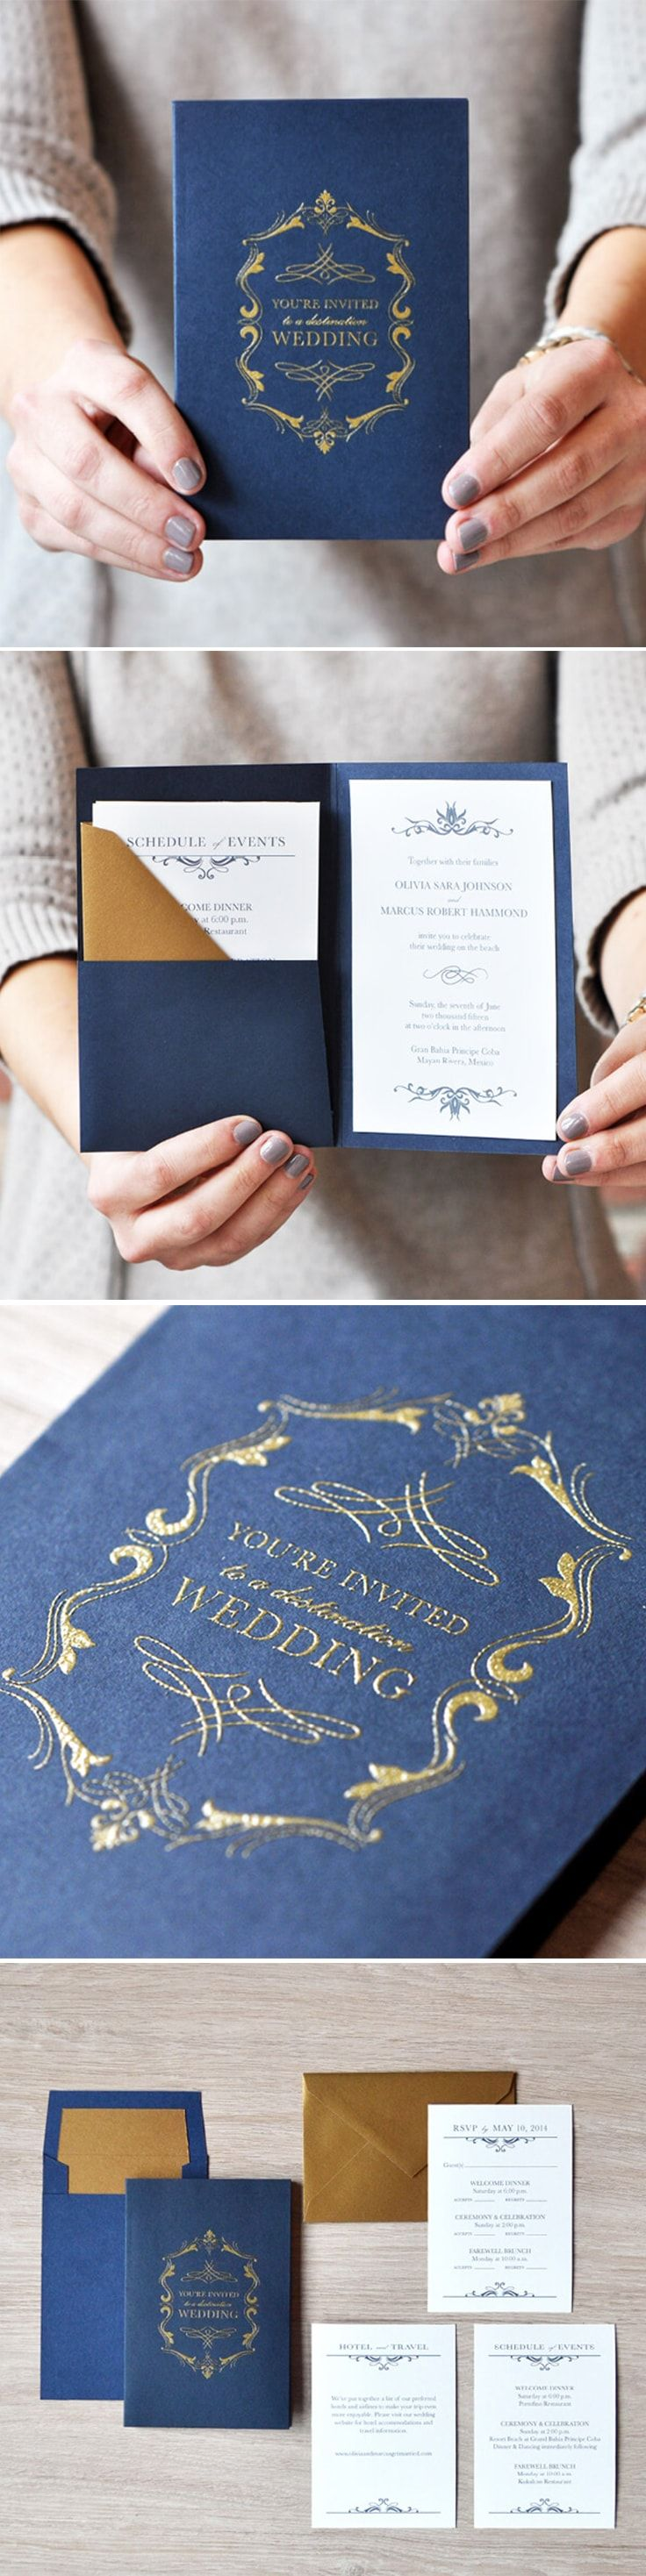 Wedding Invitation | OLIVIA Ahoy brides-to-be! If your style is nautical luxury, step aboard our Olivia suite! Gold accents + Pocket+ Luxepress printed + shimmer lined envelope = ychat-worthy gorgeousness #EngagingPapers #bridetobe #wedding #invitation